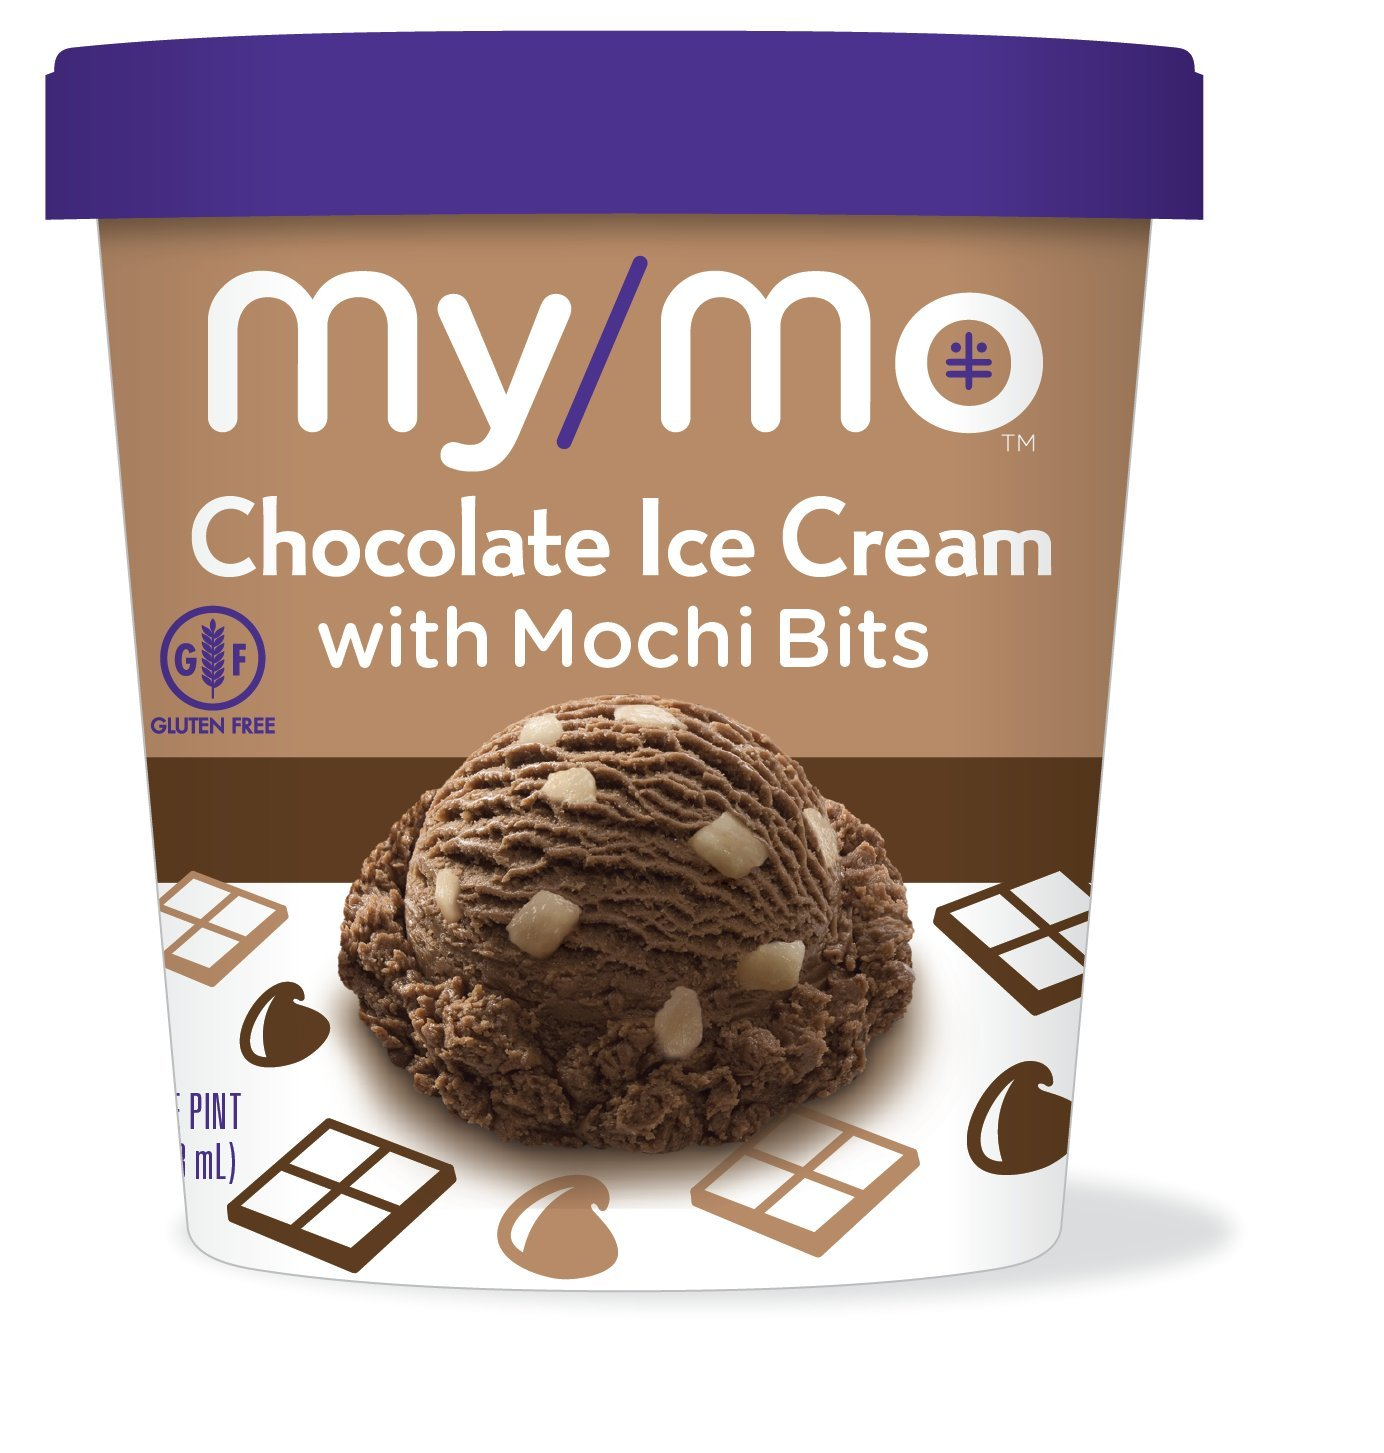 My/Mo Chocolate Ice Cream with Mochi Bits (8 pints)